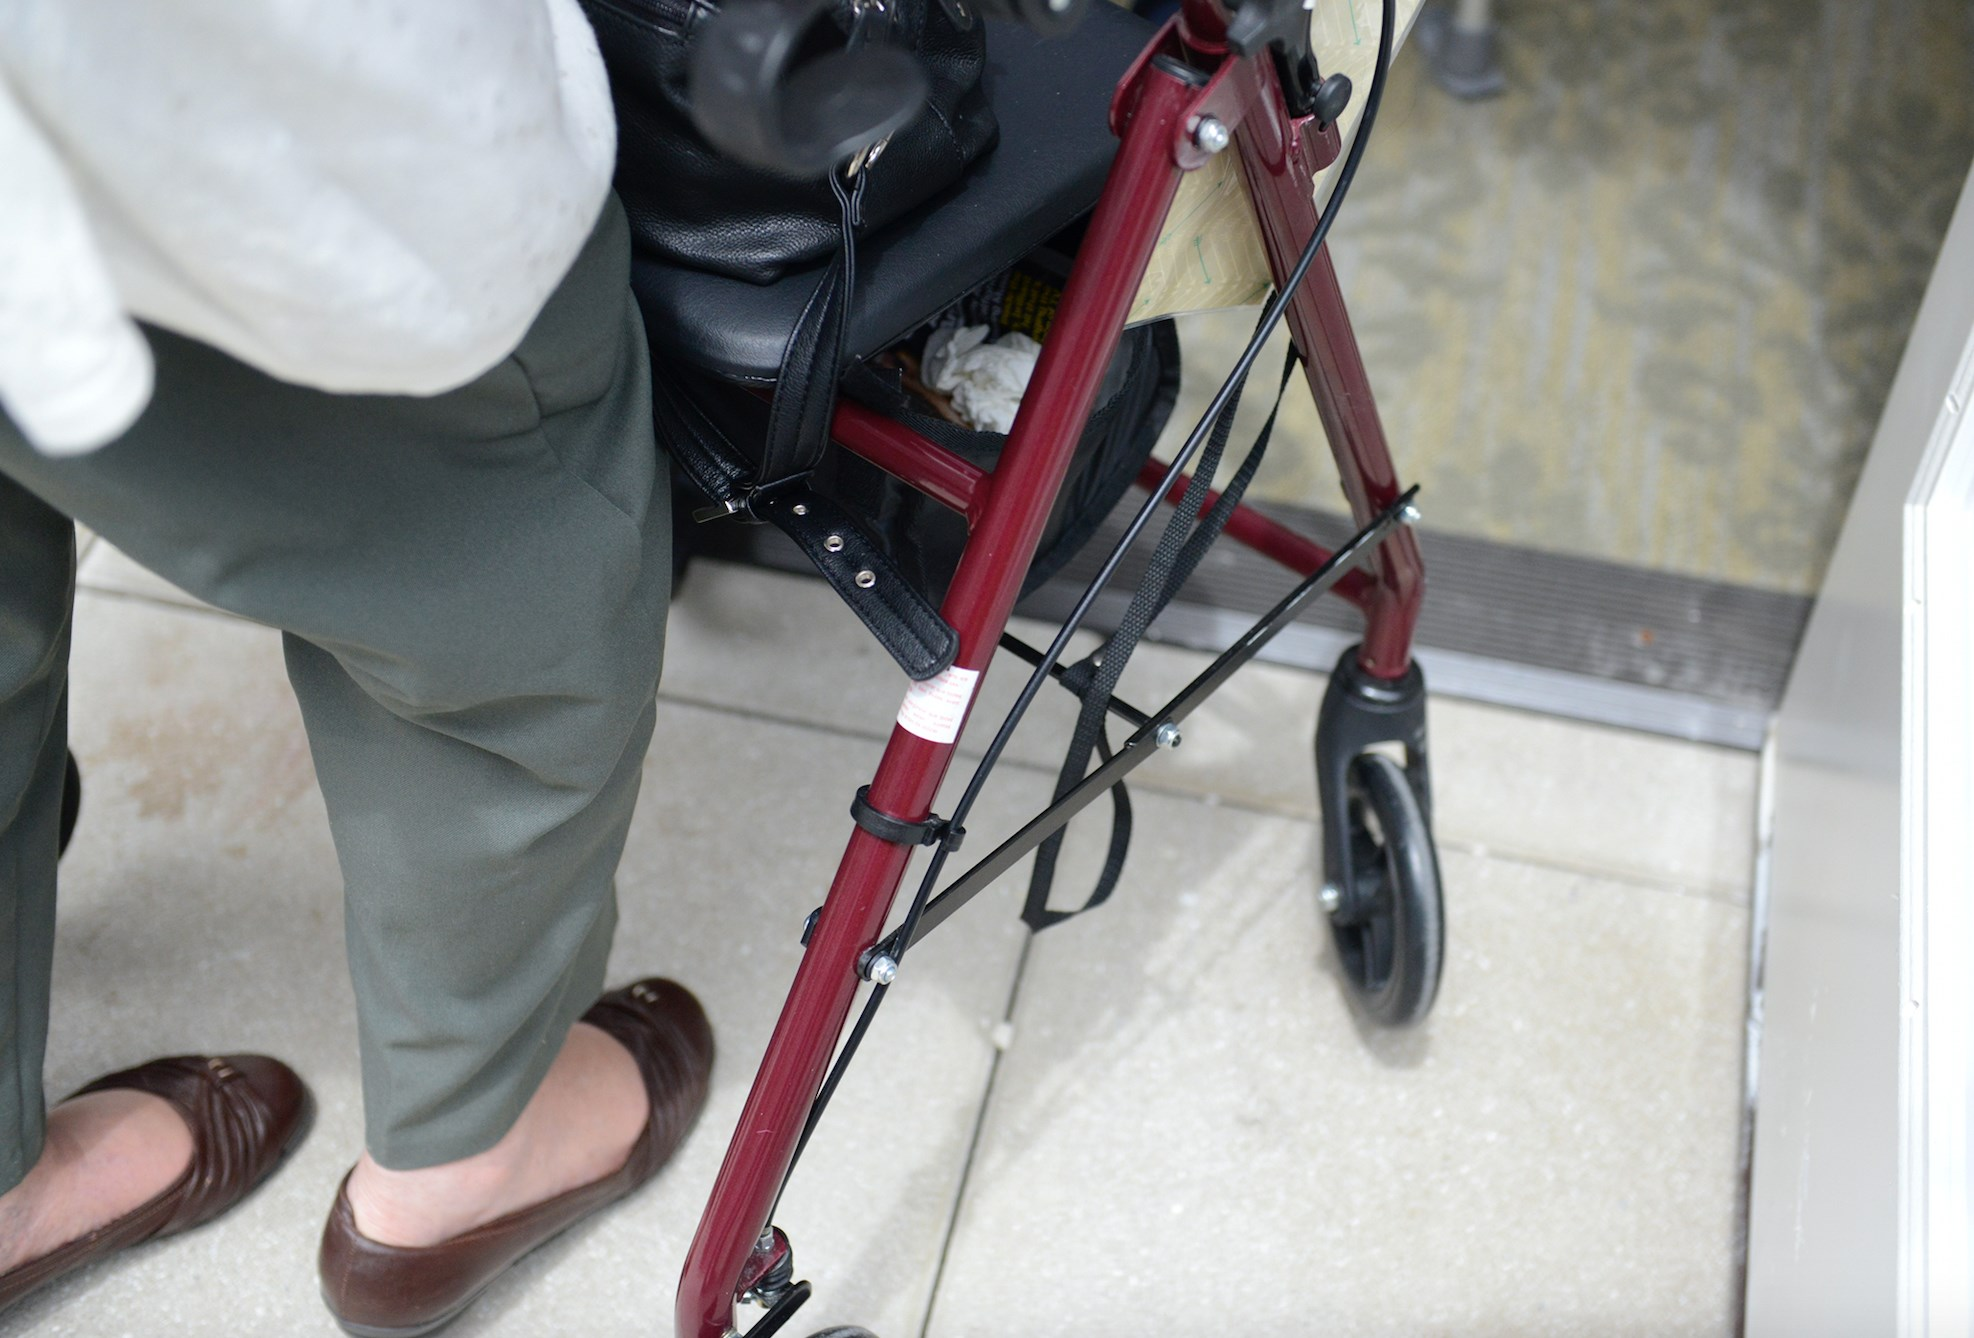 42% of older adults have a disability: CDC